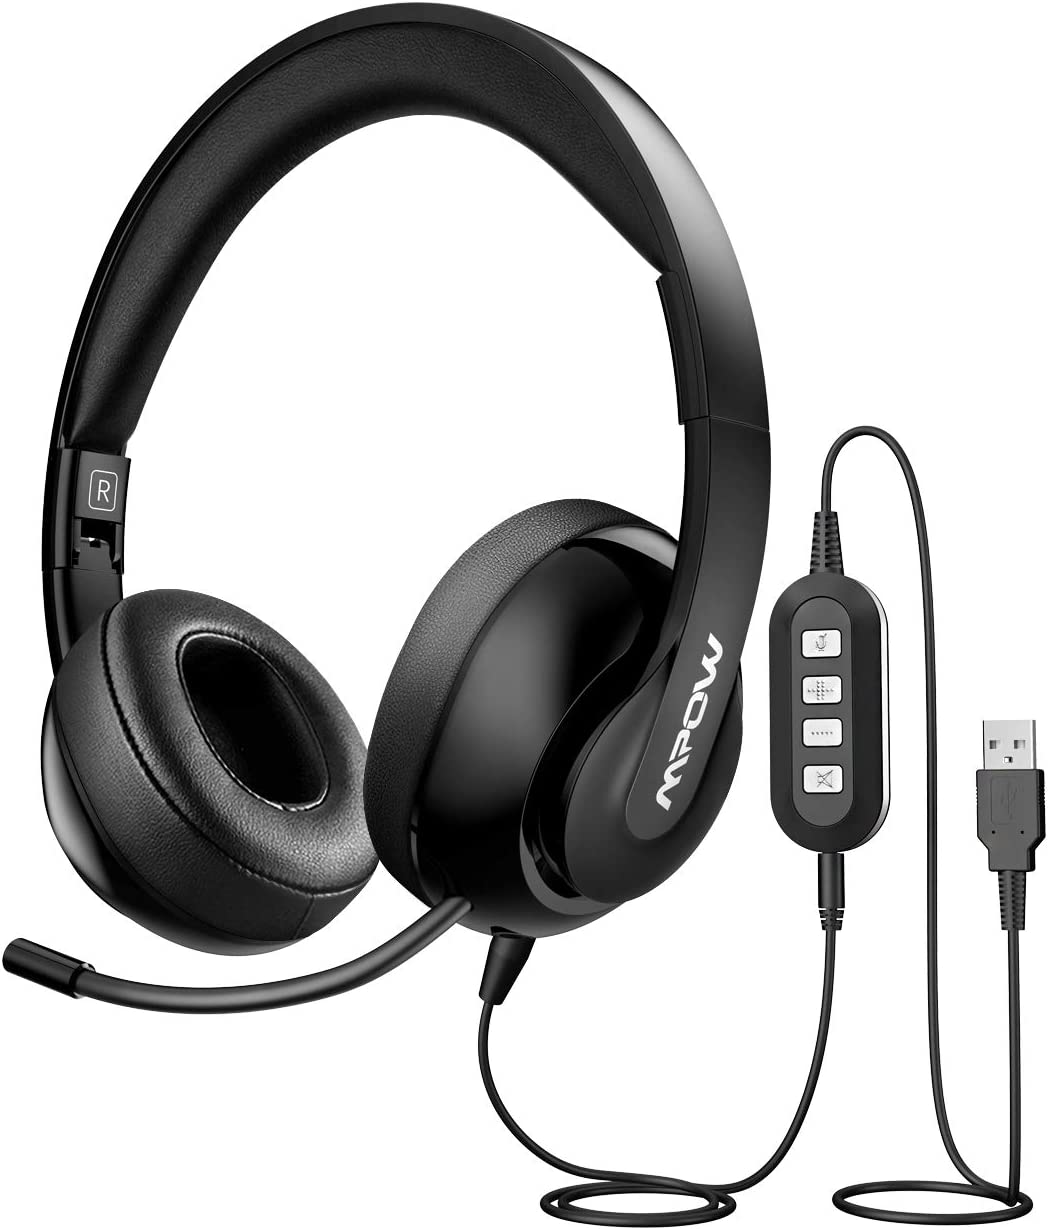 Mpow 3.5mm/USB Headsets, Foldable Computer Headset with Mute Function, PC Headphones with Retractable Microphone Noise Canceling, All Day Comfort for Meetings/Call Center/School